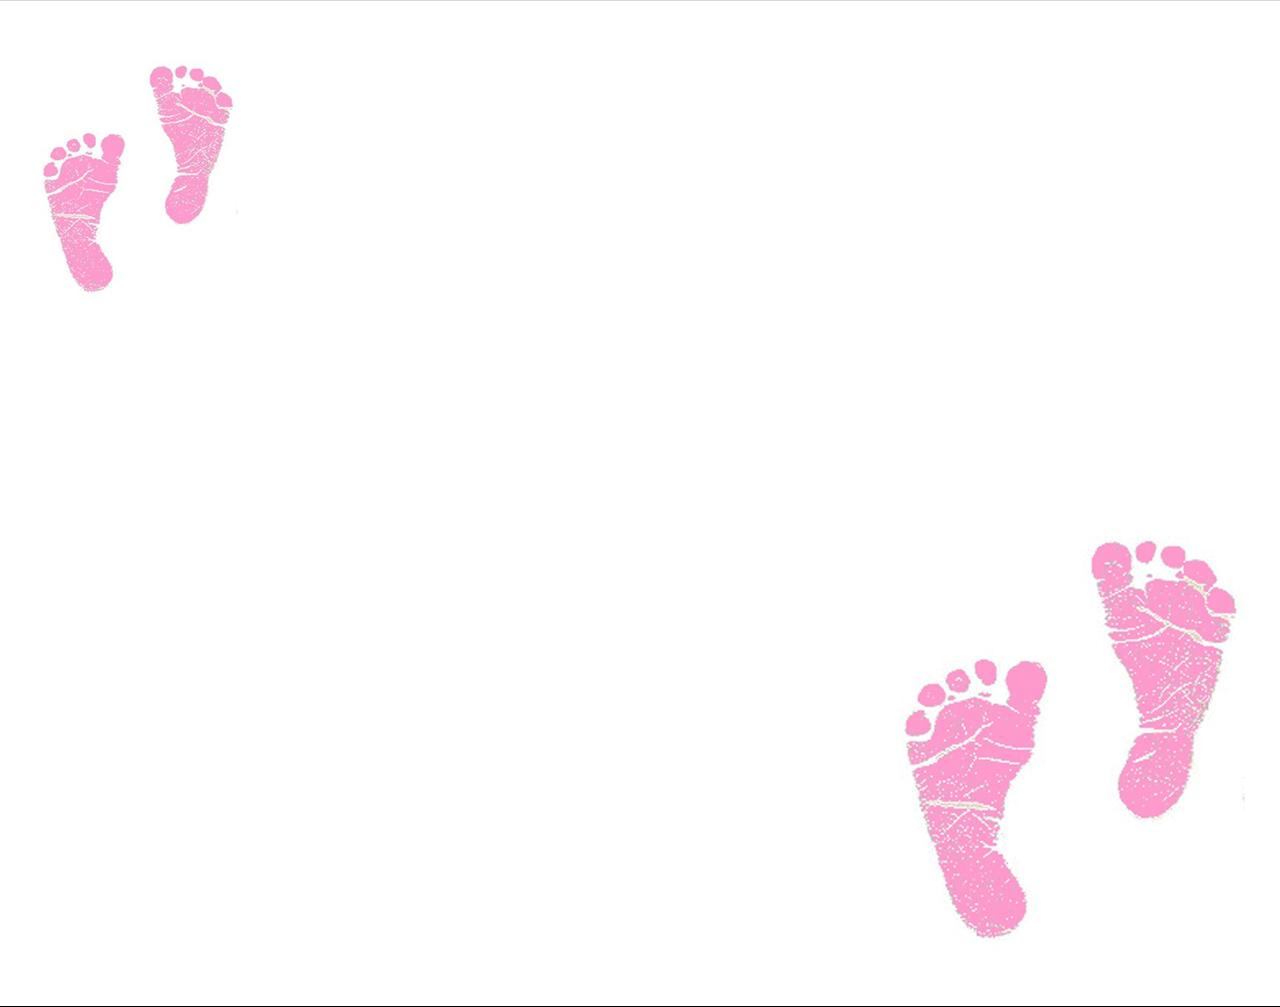 Baby Footprint Clipart http://backgrounds.picaboo.com/Backgrounds/BGViewEntry.aspx?entry_guid=9ea04137346e48c184ef5b6b006024cb